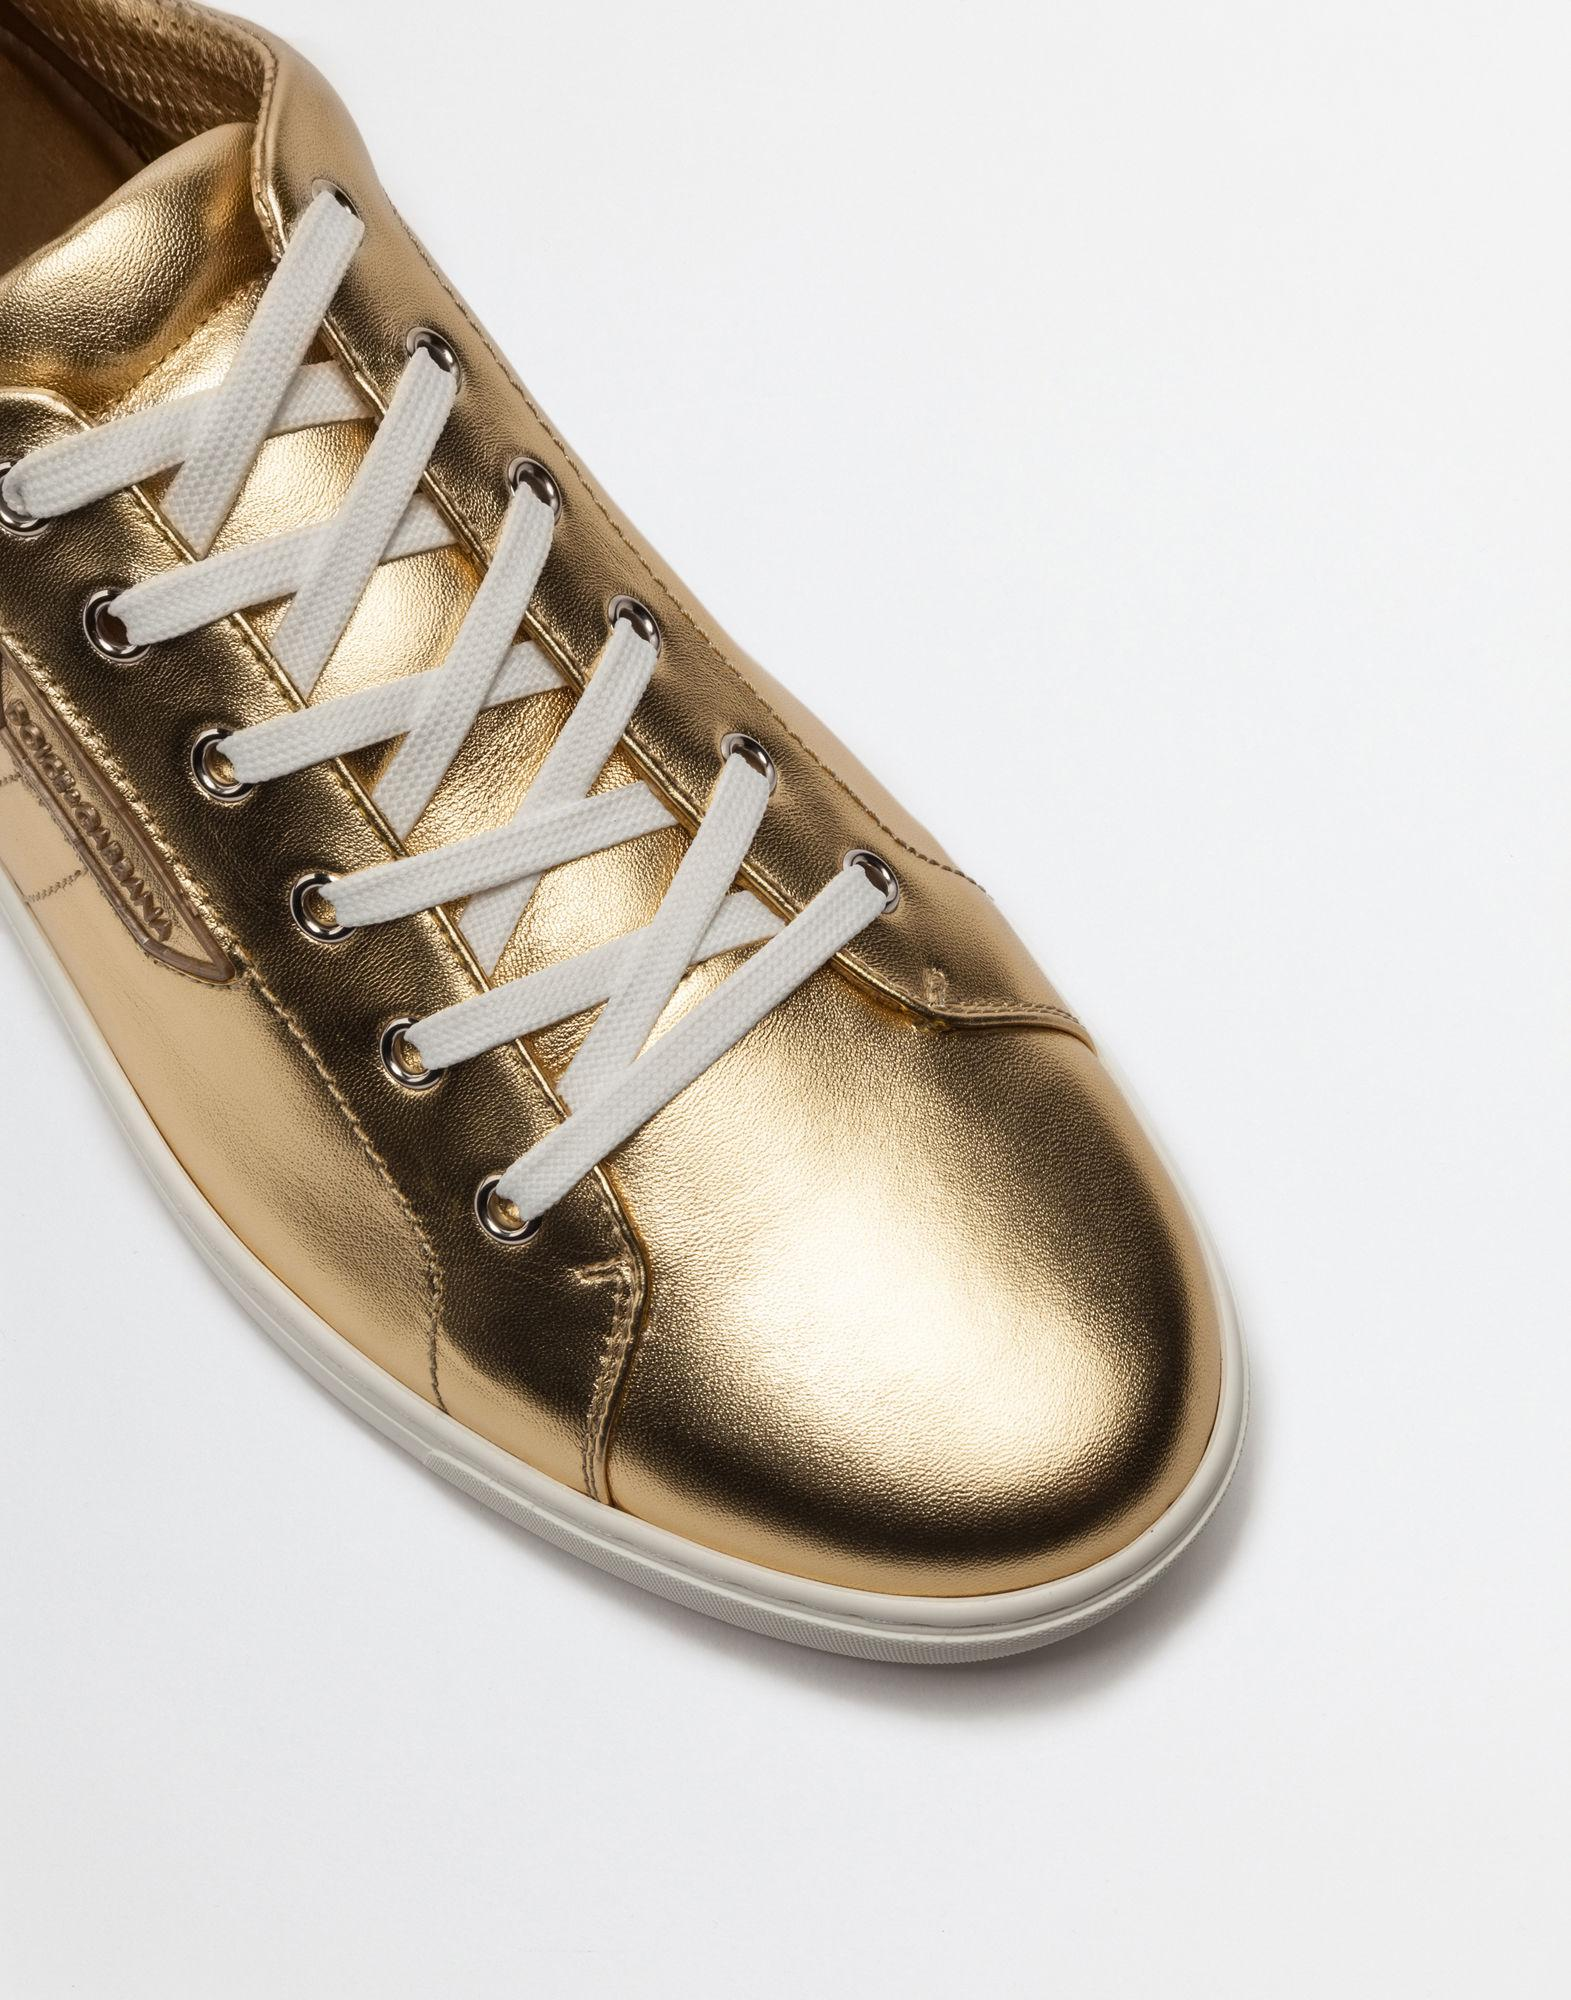 9e11fa5cd7bb Lyst - Dolce   Gabbana Metallic Leather Sneakers London in Metallic ...